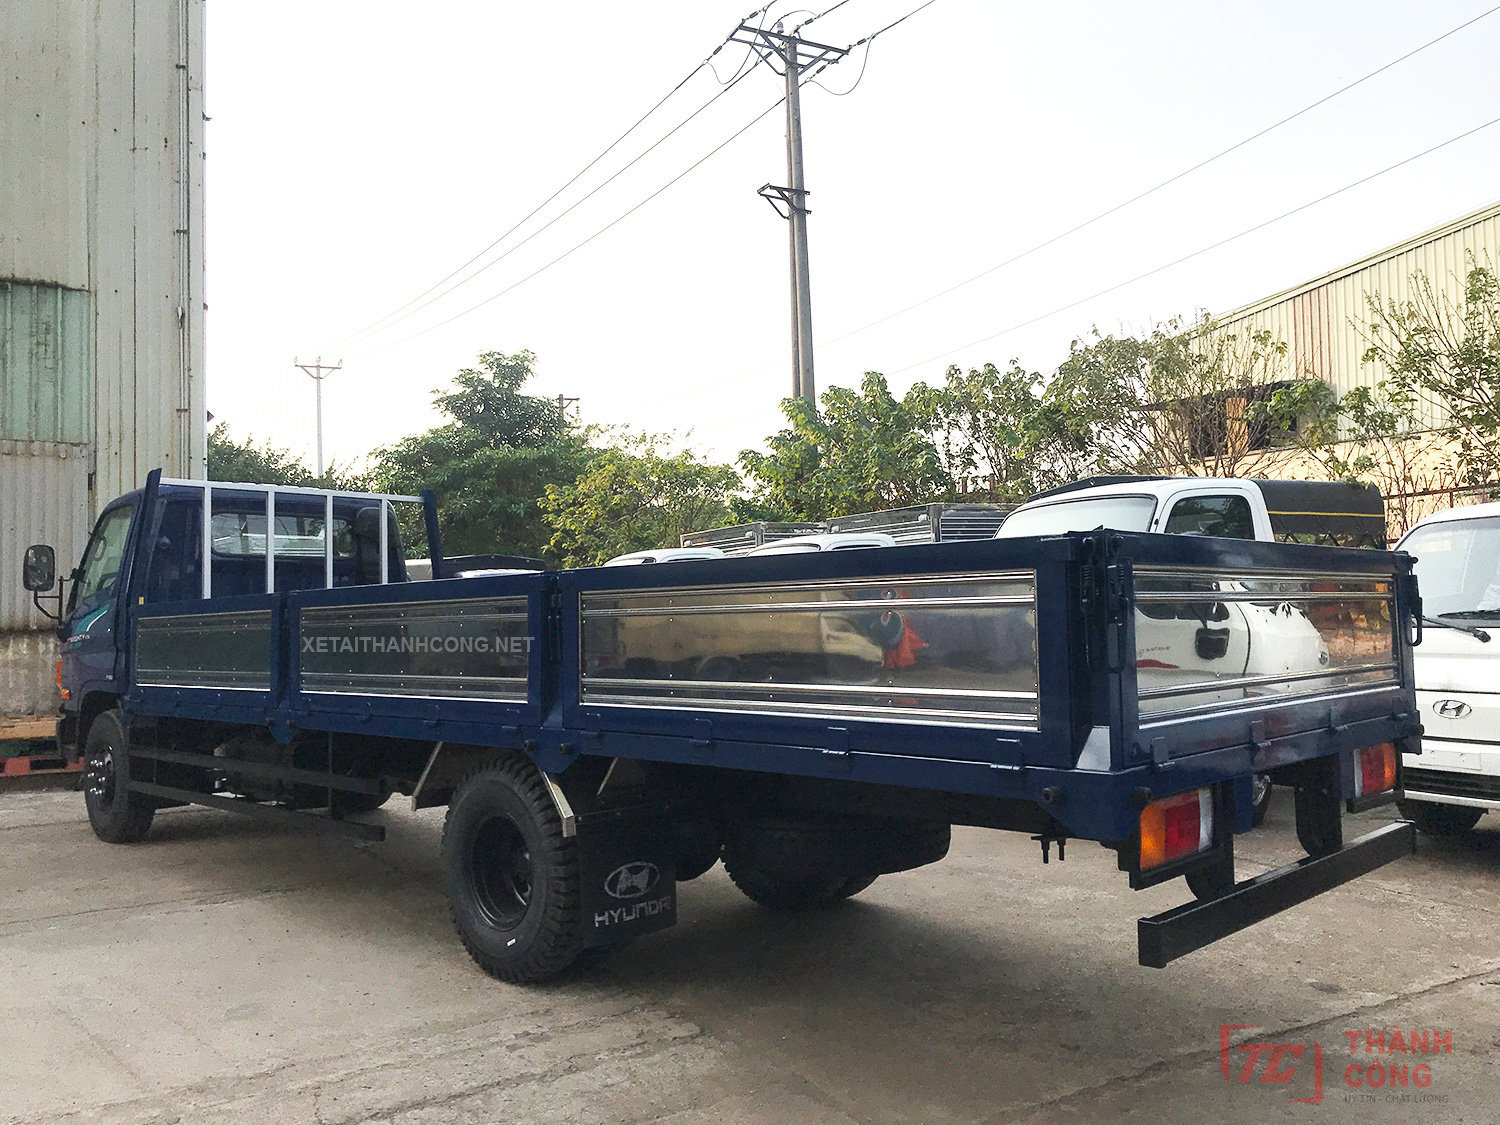 Mighty 110xl thung lung